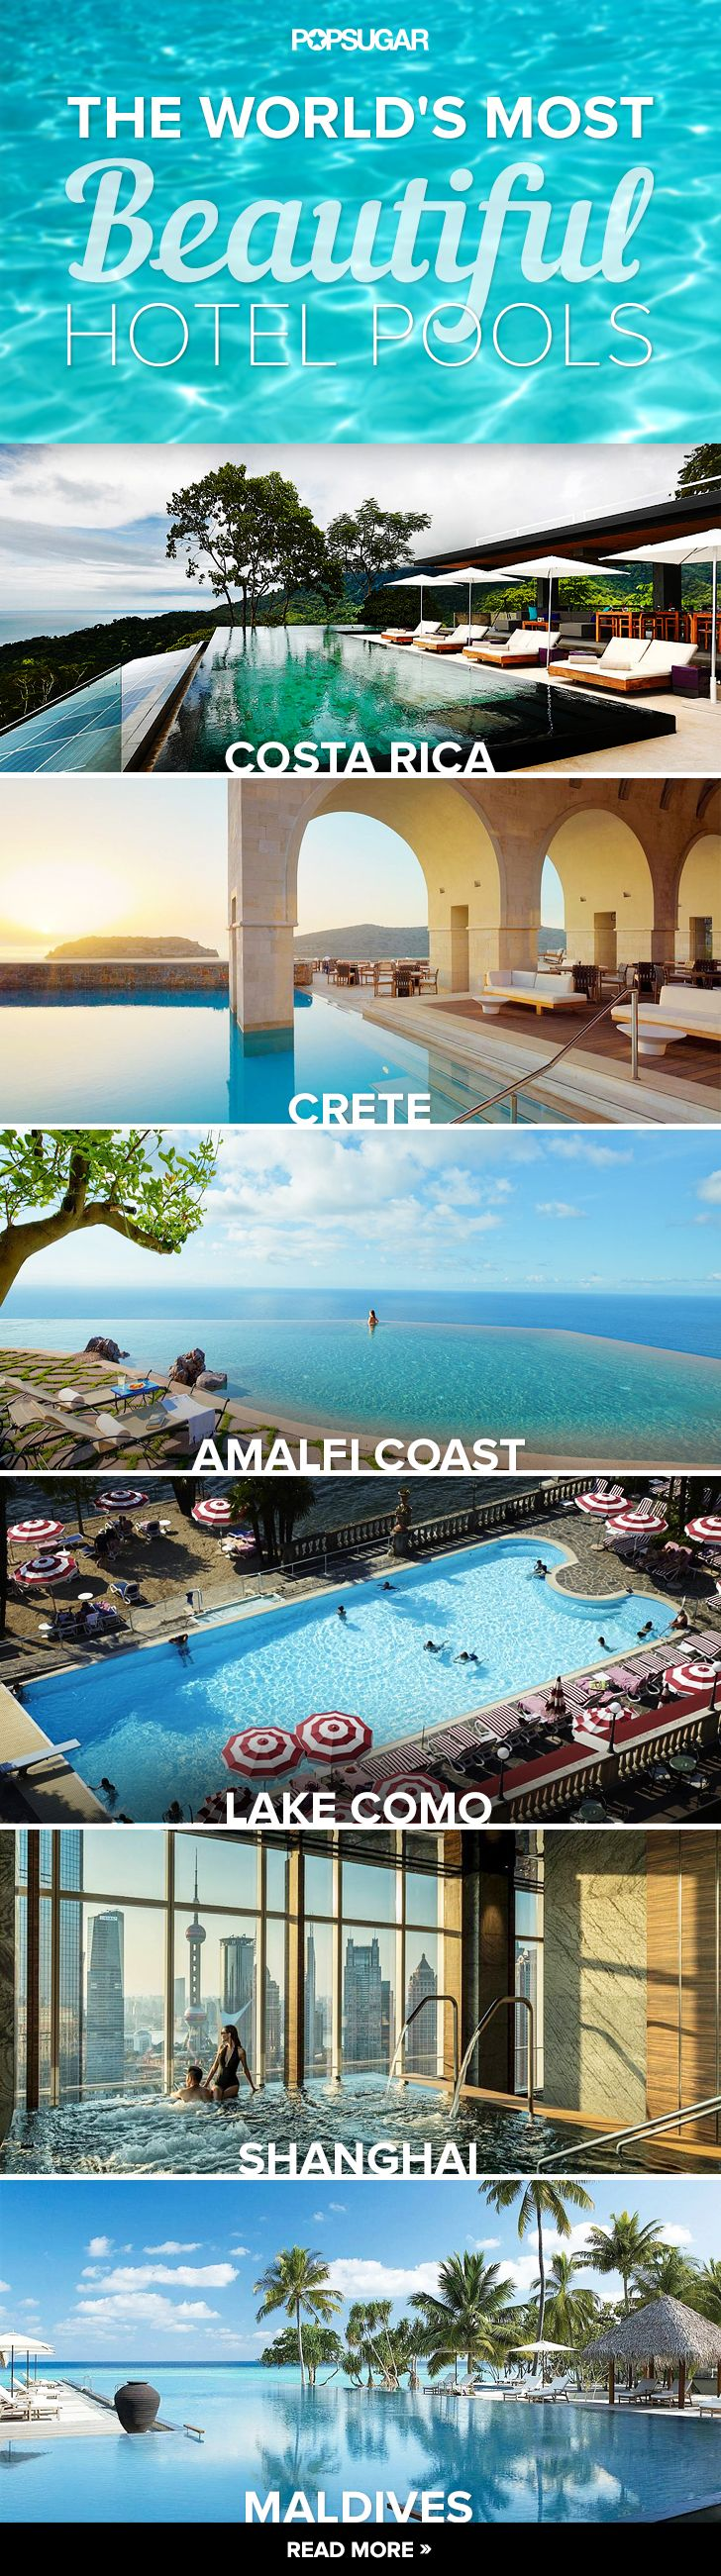 The World's Most Beautiful Hotel Pools - thinking of a holiday destination!